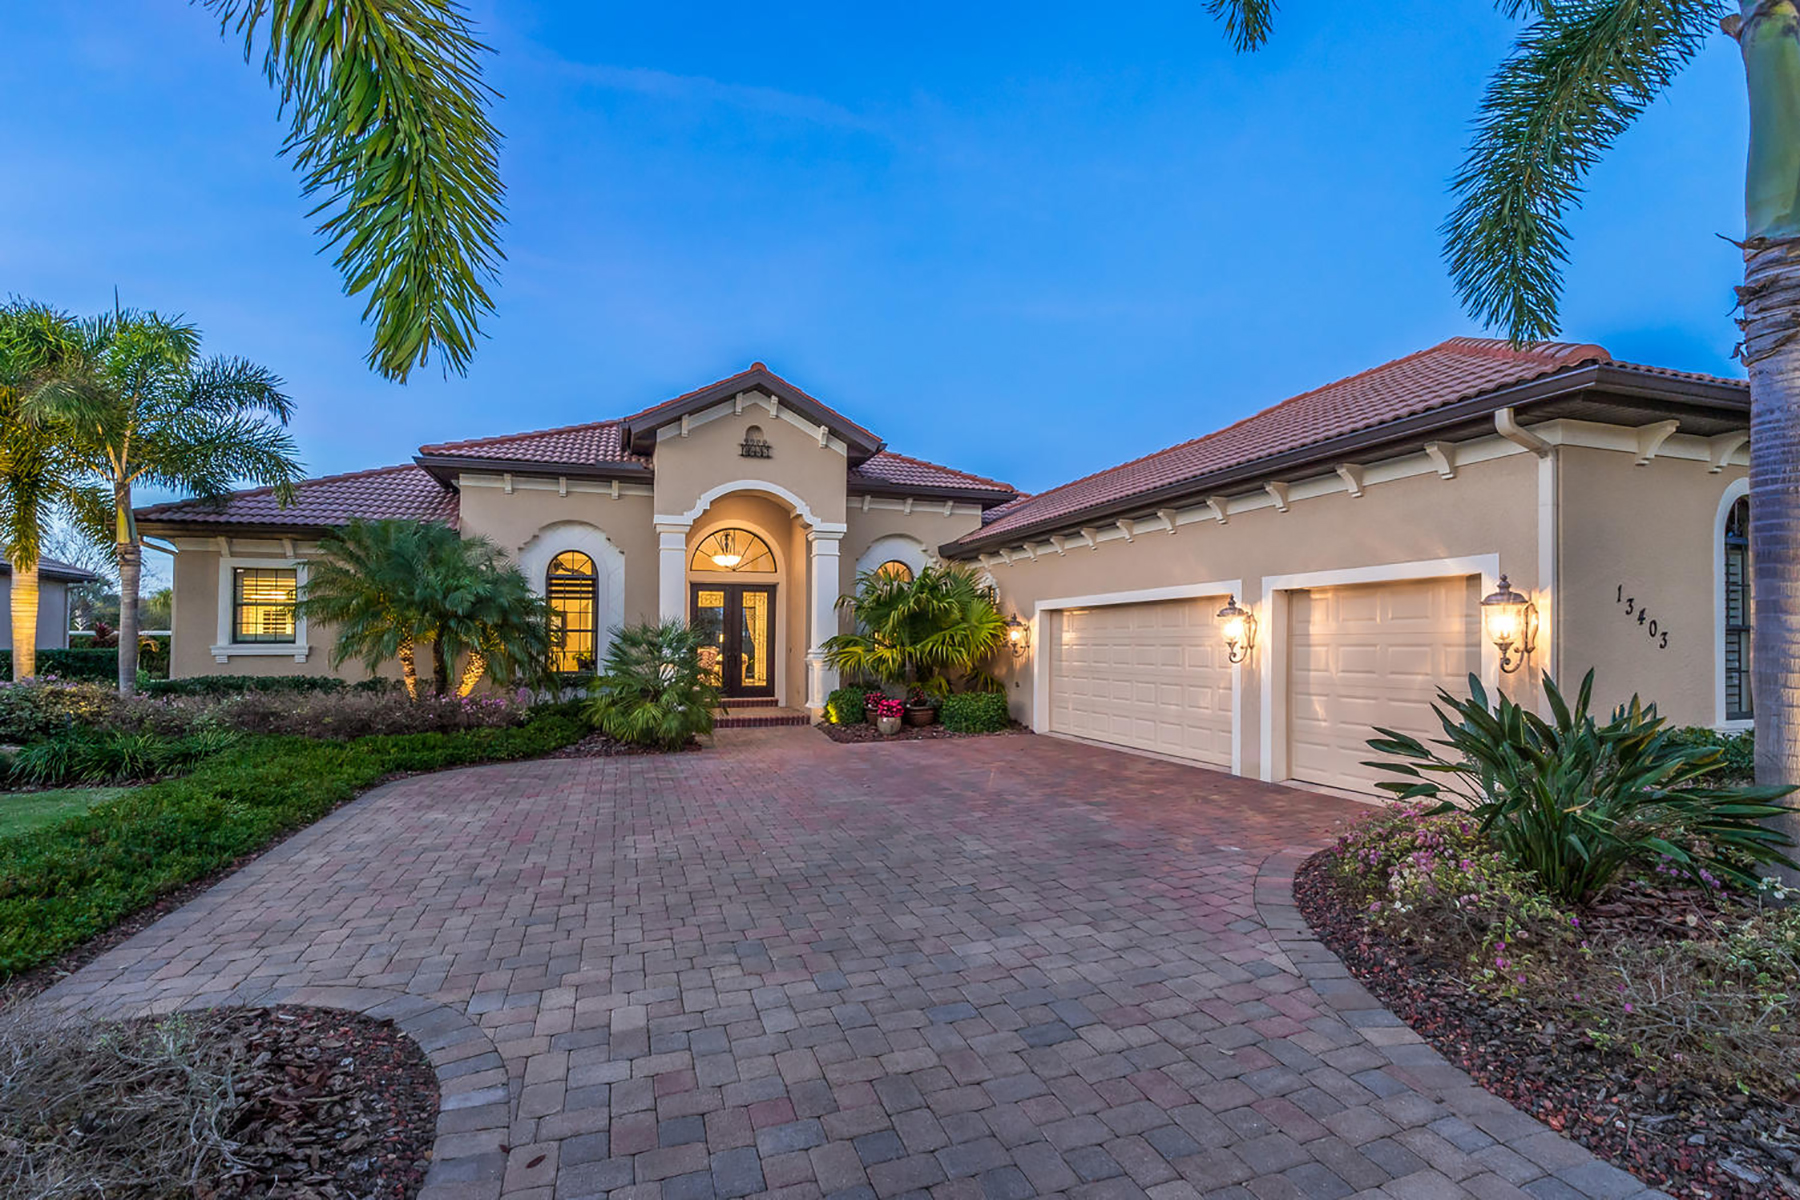 Single Family Home for Sale at LAKEWOOD RANCH COUNTRY CLUB 13403 Matanzas Pl, Lakewood Ranch, Florida 34202 United States